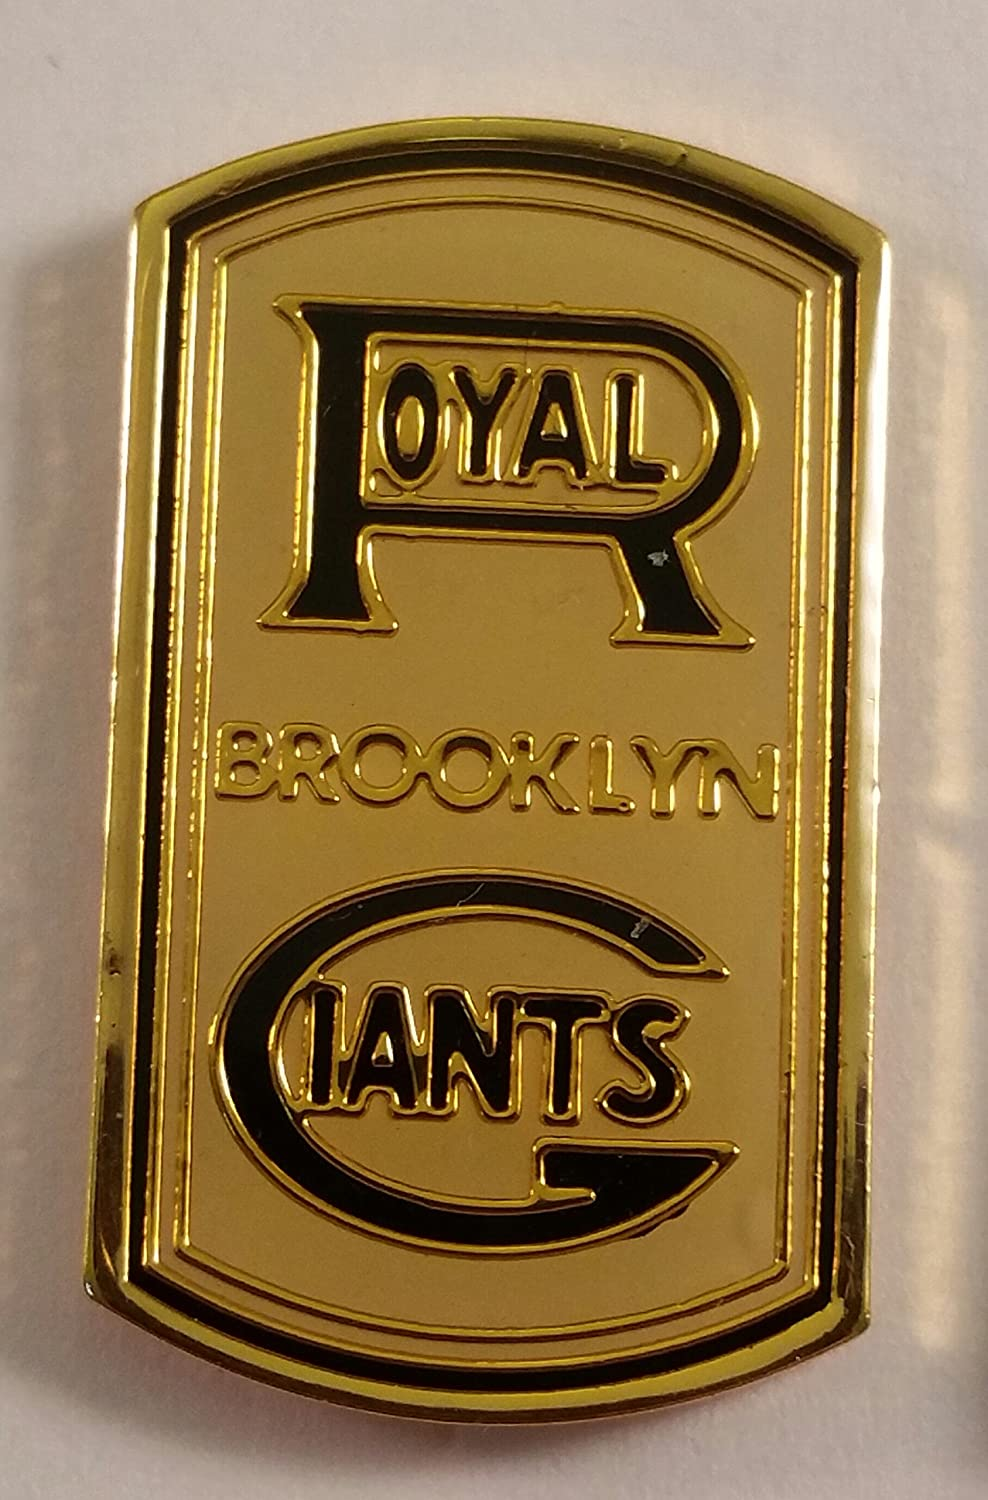 Brooklyn ROYAL GIANTS Logo Lapel PIN